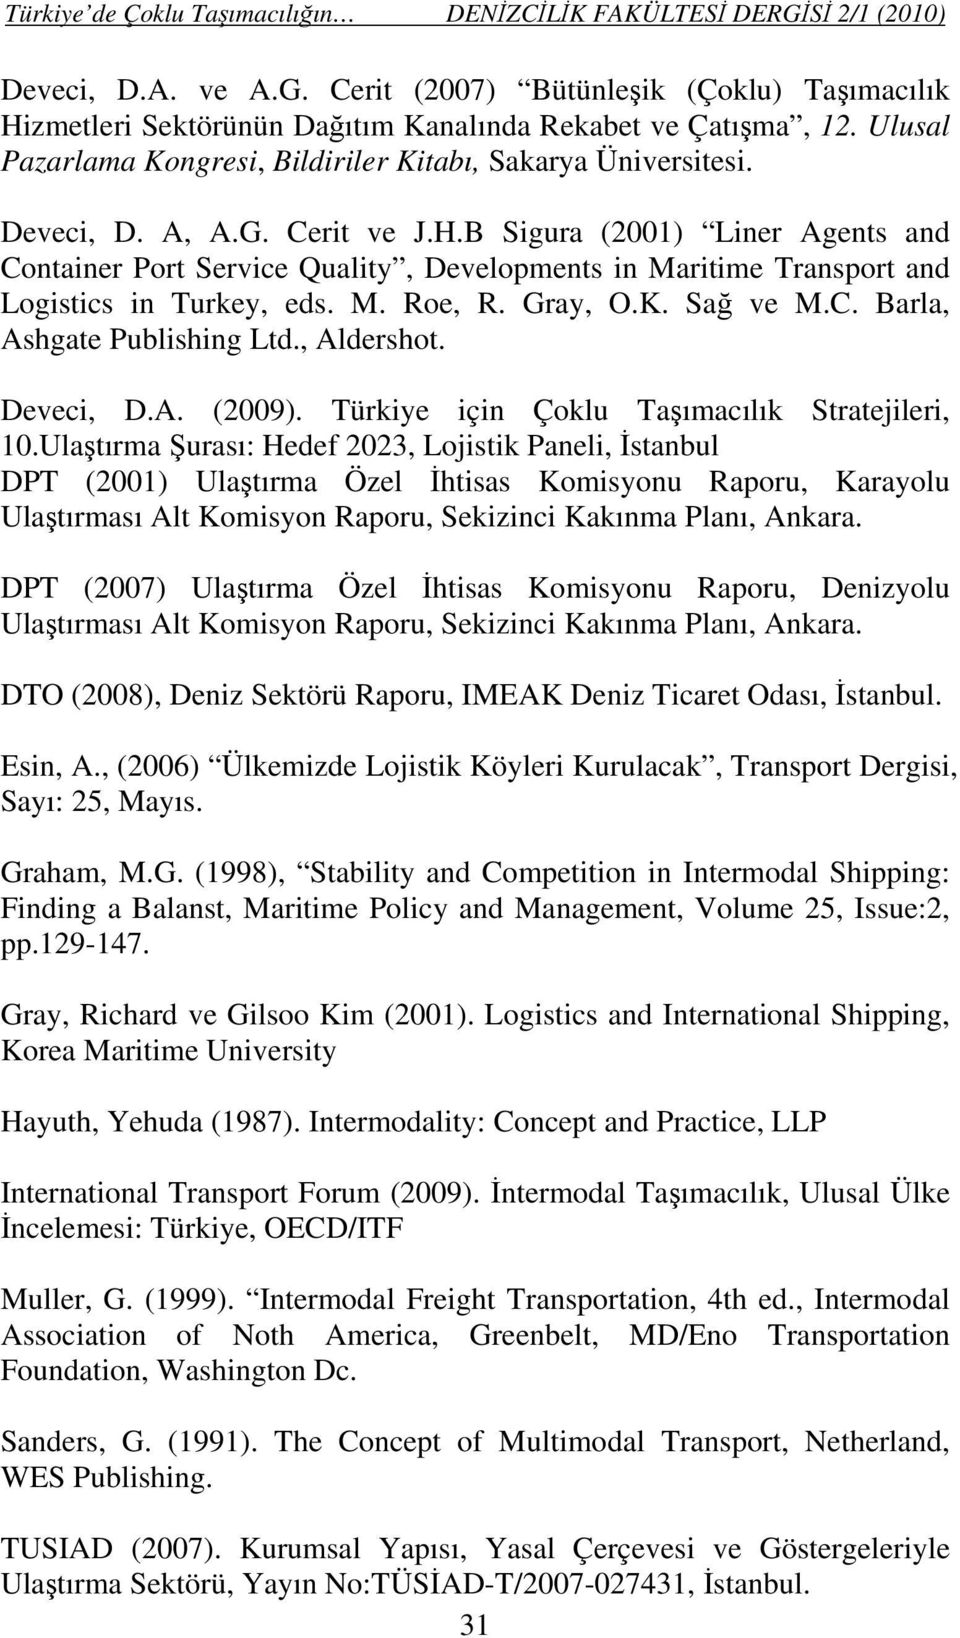 B Sigura (2001) Liner Agents and Container Port Service Quality, Developments in Maritime Transport and Logistics in Turkey, eds. M. Roe, R. Gray, O.K. Sağ ve M.C. Barla, Ashgate Publishing Ltd.